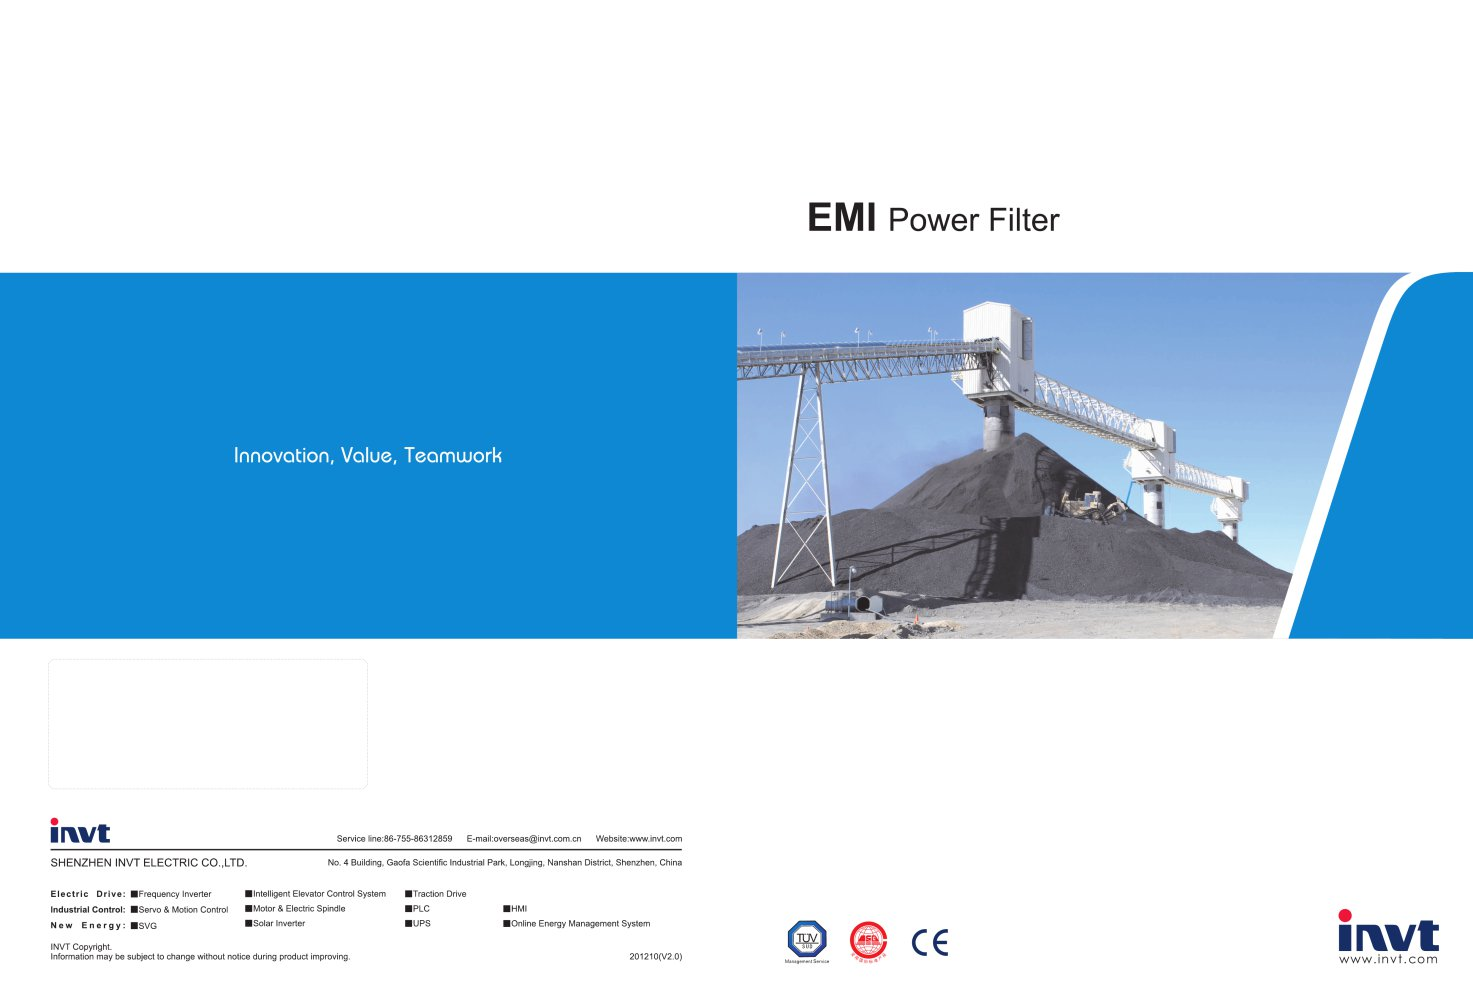 EMI power filter - 1 / 8 Pages